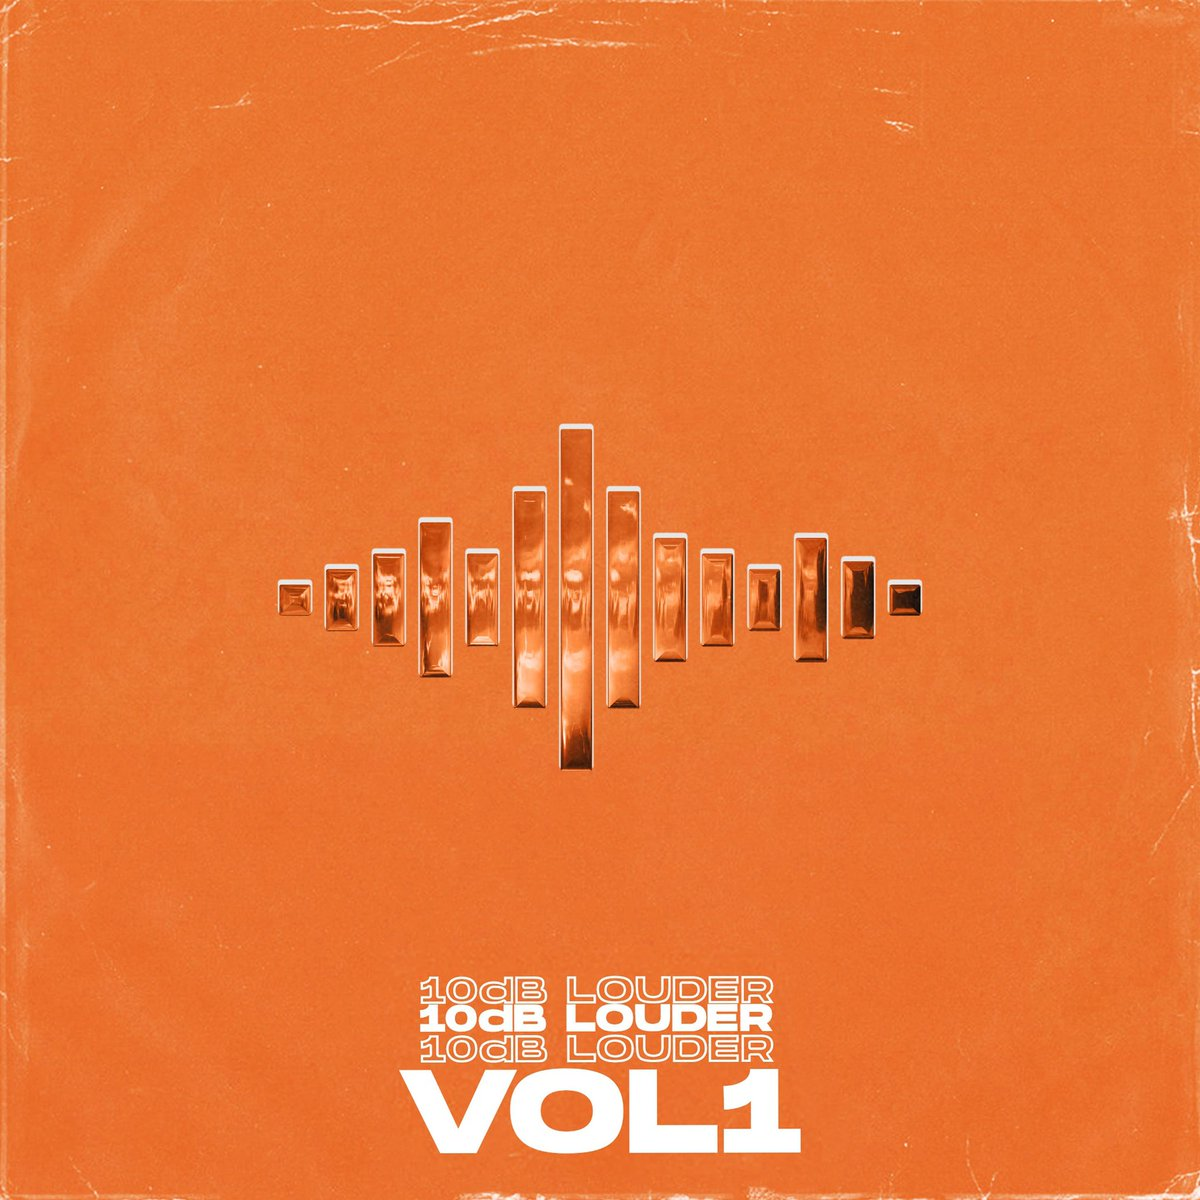 """We proudly present10dB Louder"""" Vol 1!  This various artist EP features an array of solid music from @JaiAmore @StephanieSounds, BIM, @RoseKimberley @chess_galea  and @kinnoha.  We hope you enjoy this EP as much aswe do!   Release date:21/07/21 https://t.co/XOMzrhikRz"""